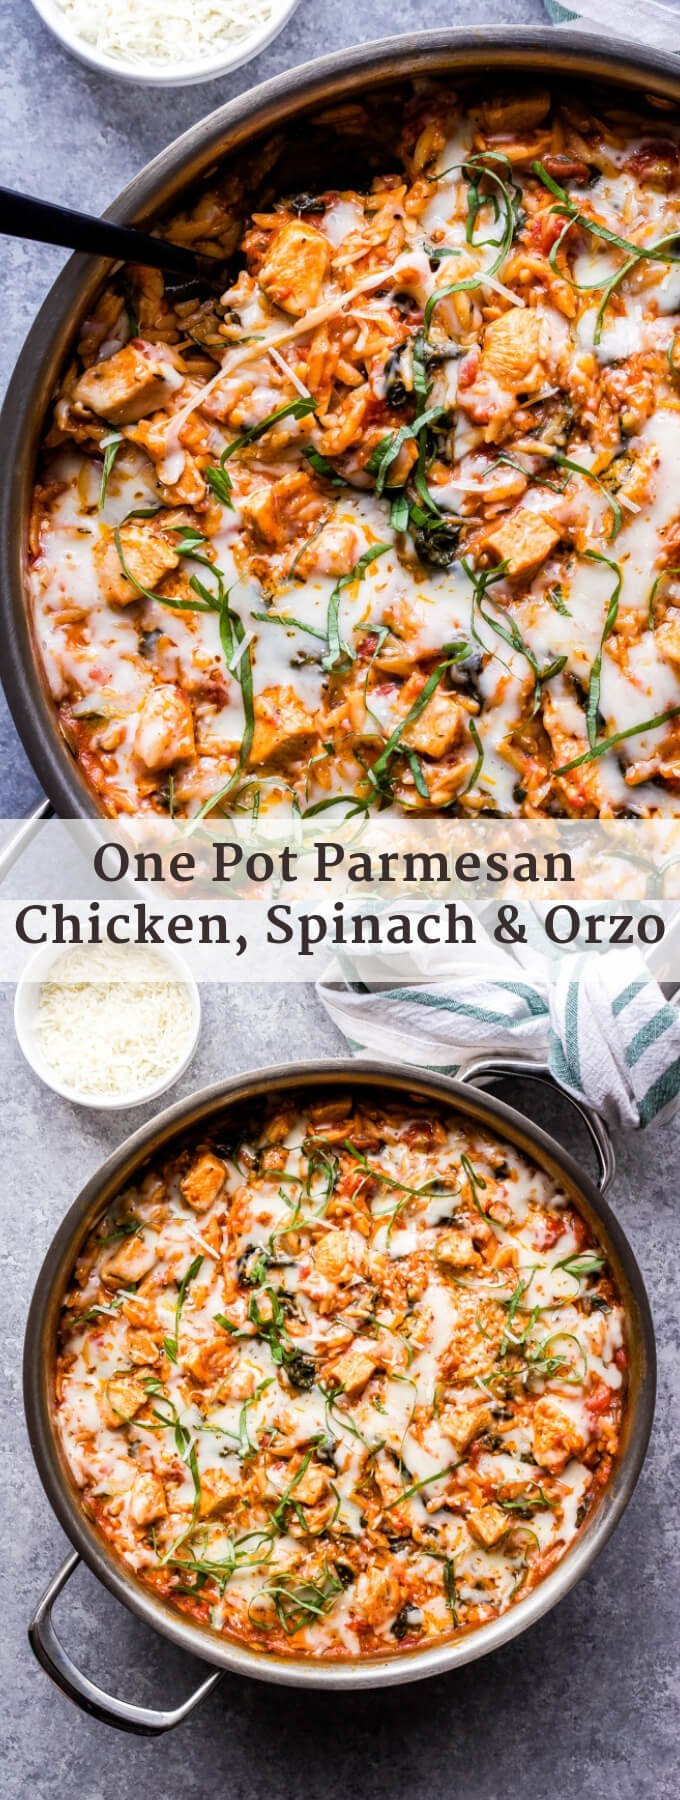 One Pot Parmesan Chicken, Spinach and Orzo has all the flavors of chicken parmesan, but without all the dishes! This easy weeknight meal is sure to please the whole family! #onepot #easyrecipe #30minutemeal #chickenparmesan #orzo #pasta #chicken #italianfood